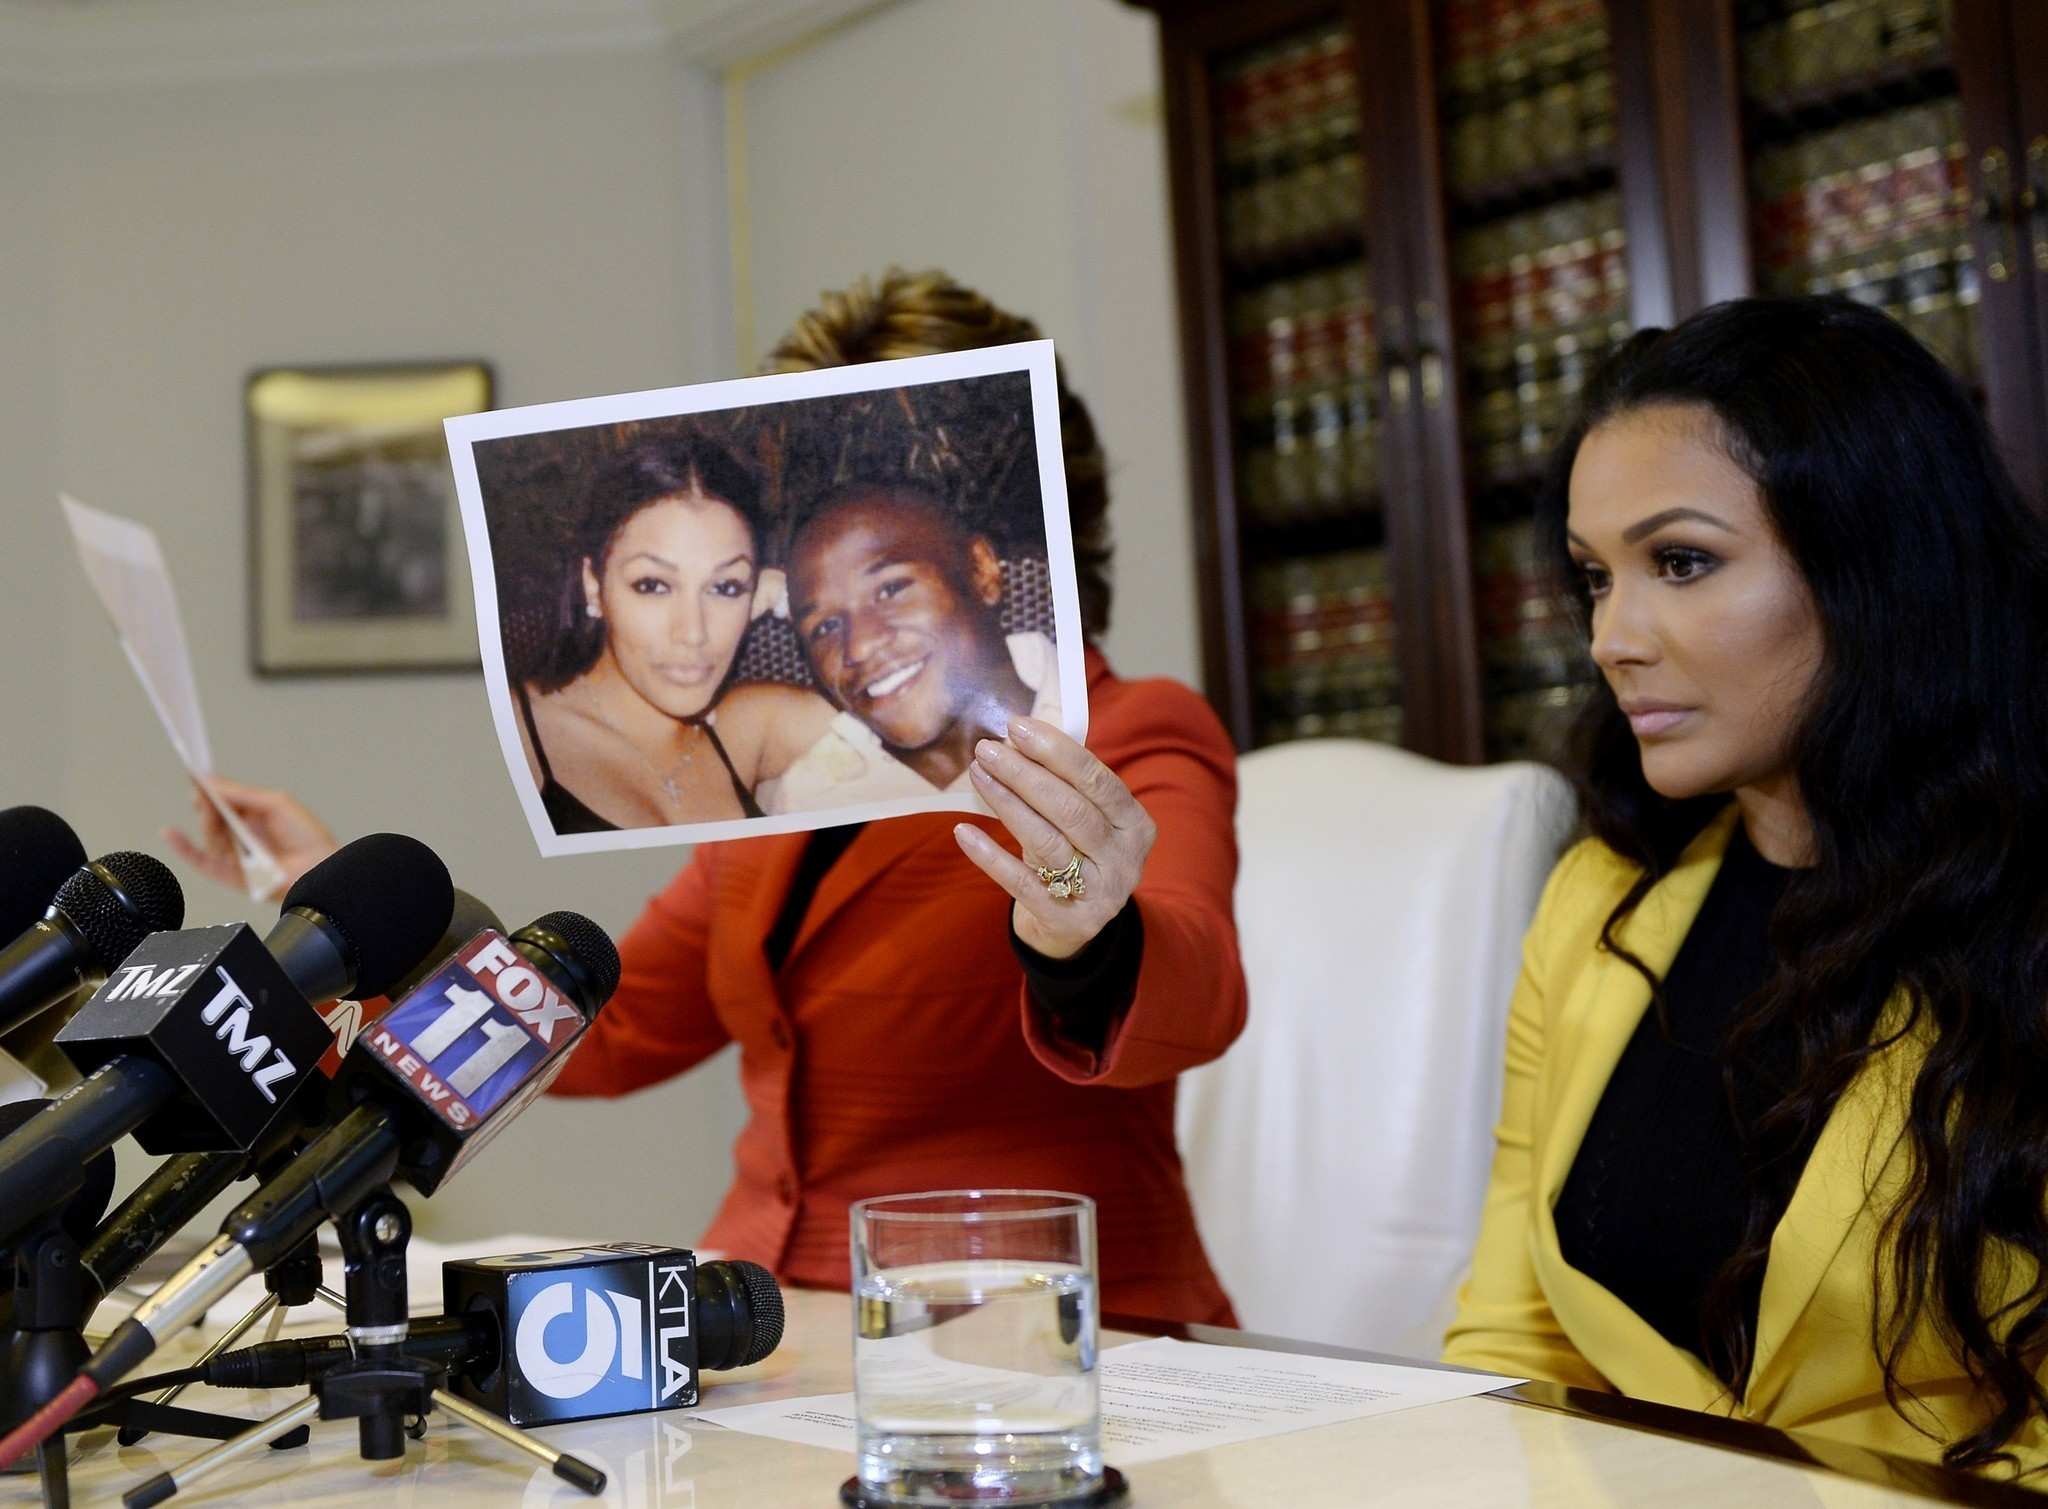 floyd weather jr sued by former fiancee miss jackson la times